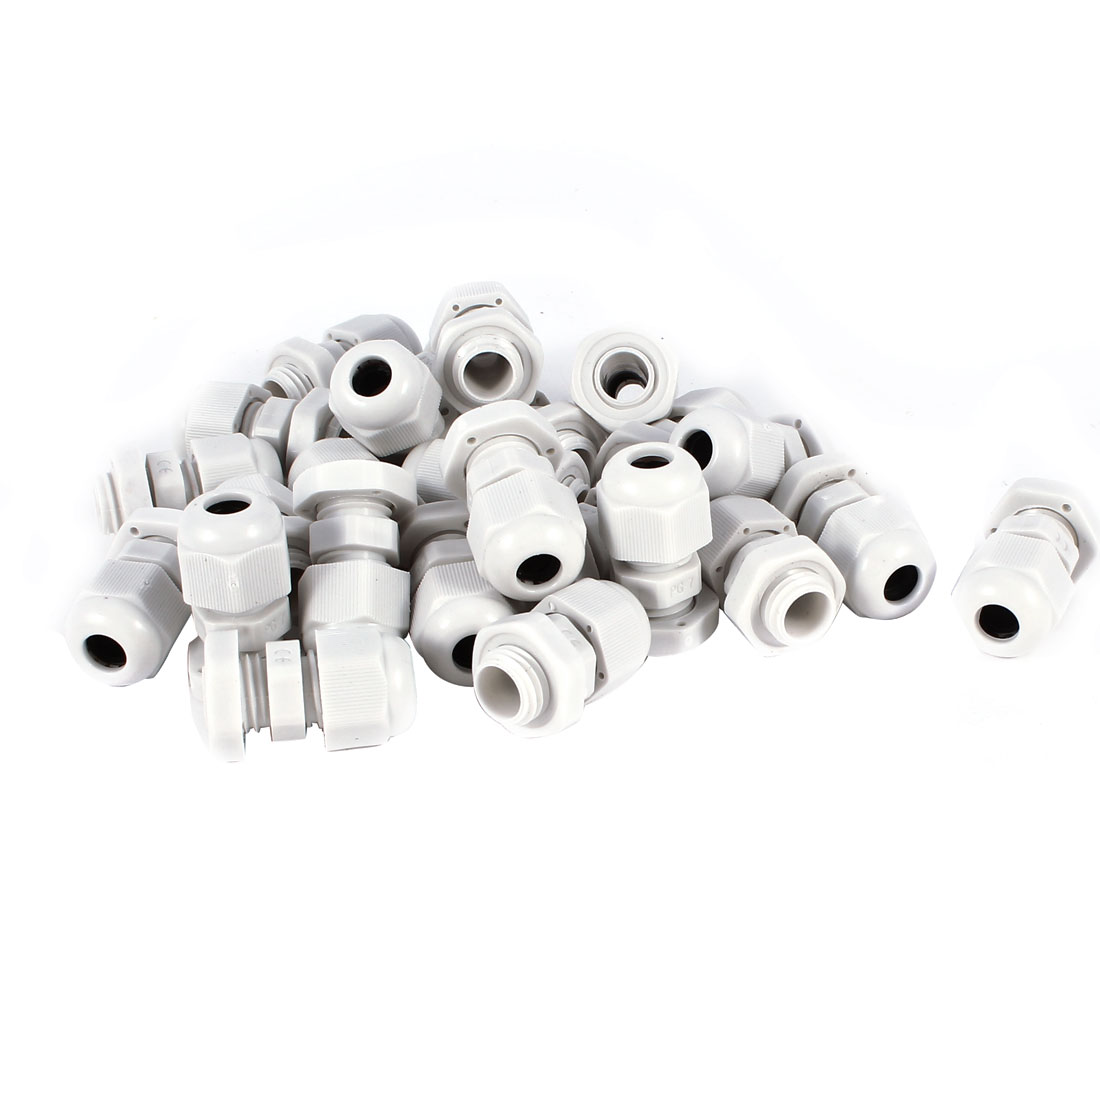 25 Pcs PG7 Waterproof Connector 12mm Threaded 3.5-6mm Cable Stuffing Joint Gland Off White